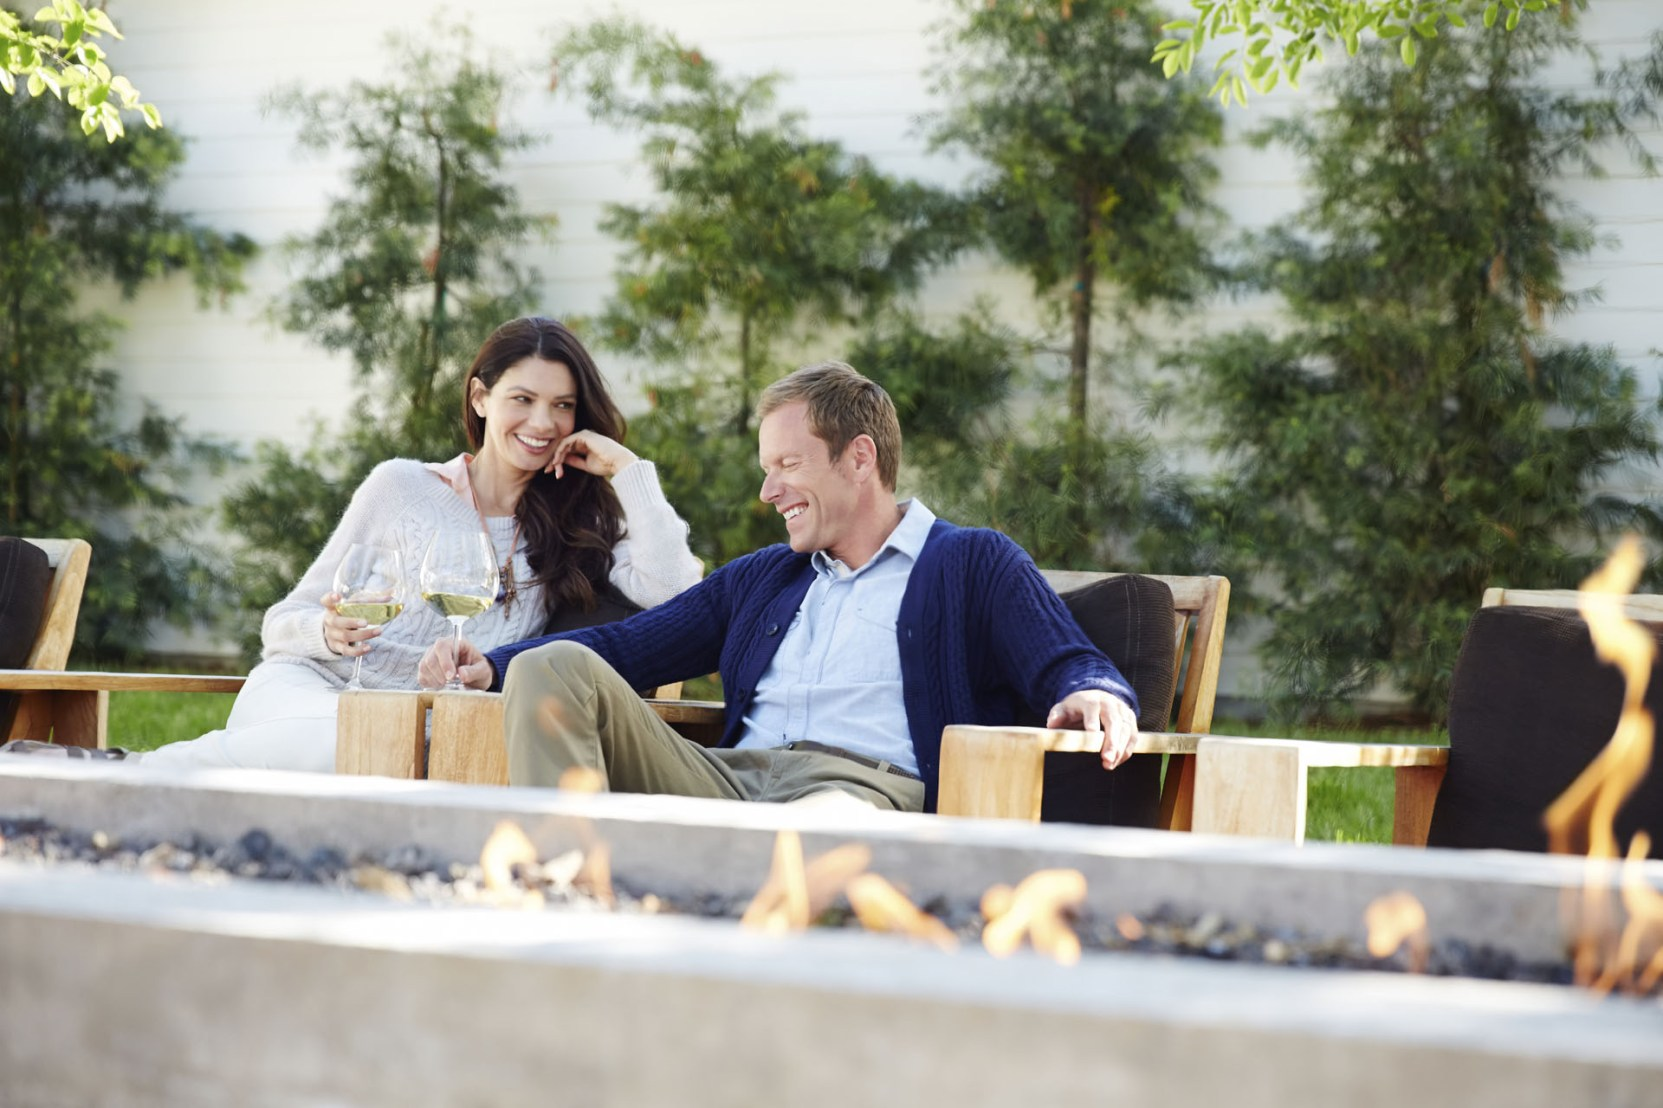 Couple With Wineglasses Sitting On Chairs At Outdoor Restaurant